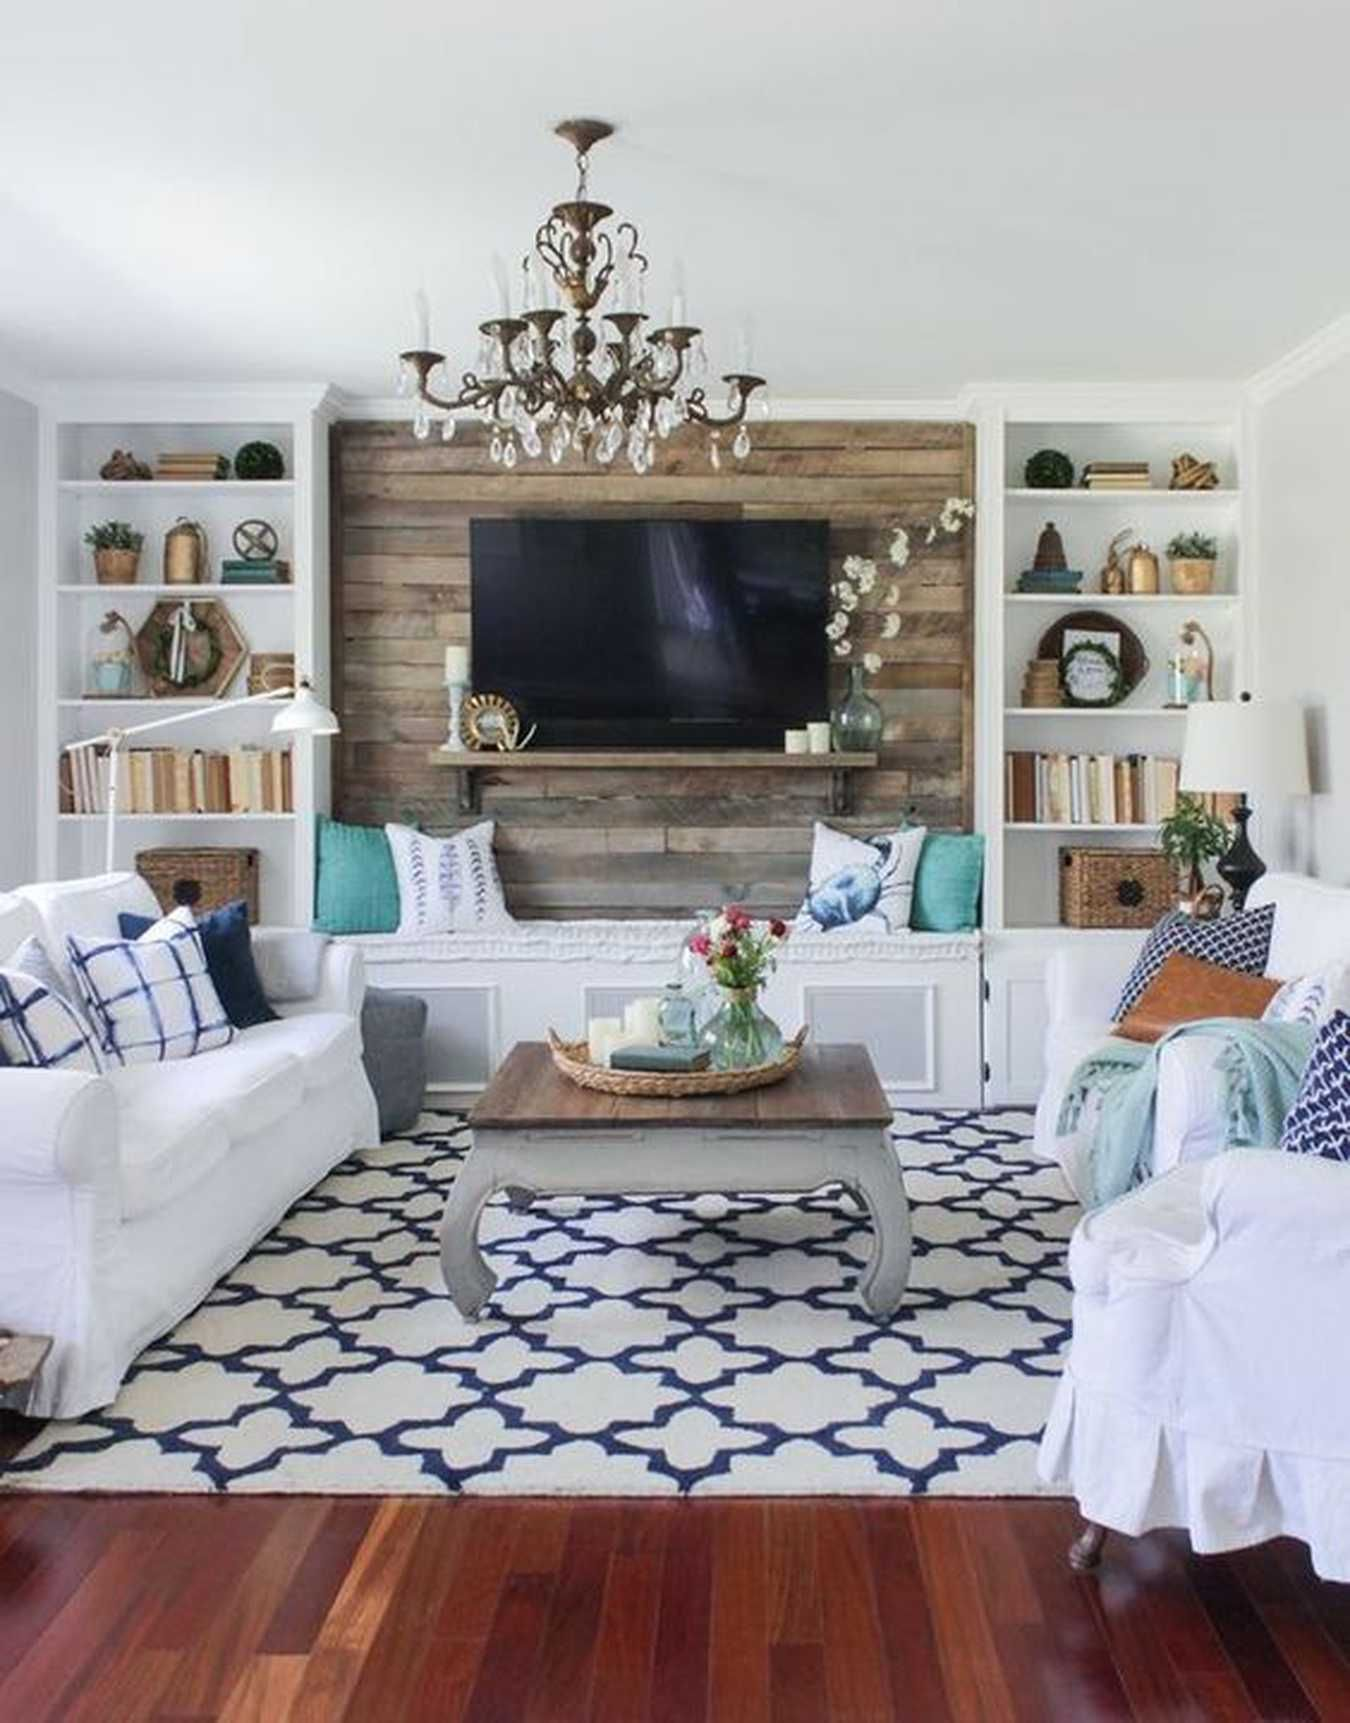 how should i decorate my living room quiz decorating ideas pinterest interior design style what s your want to know is take havenly find so you can start